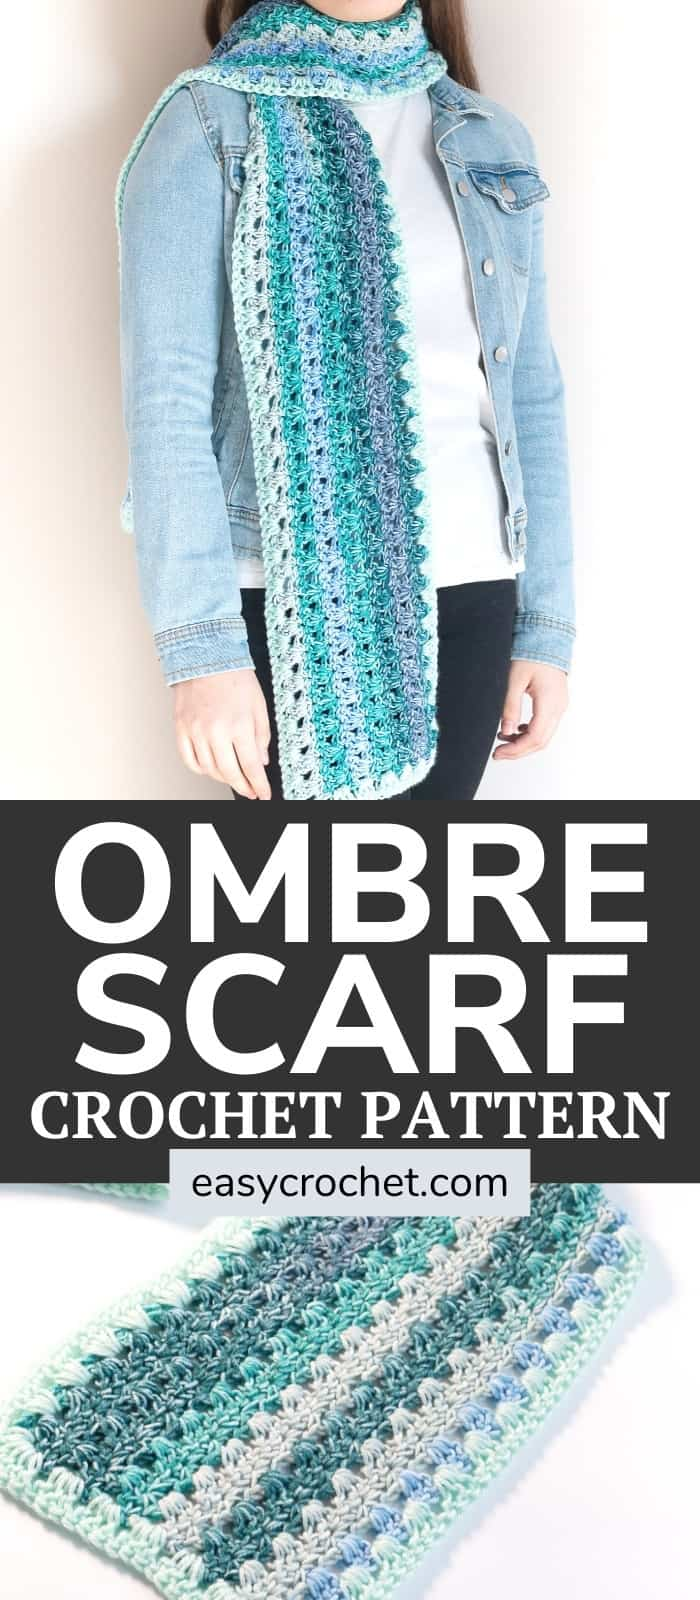 Free Crochet Scarf Pattern for an easy-to-make crochet scarf using Mandala yarn! Find the free pattern at easycrochet.com via @easycrochetcom